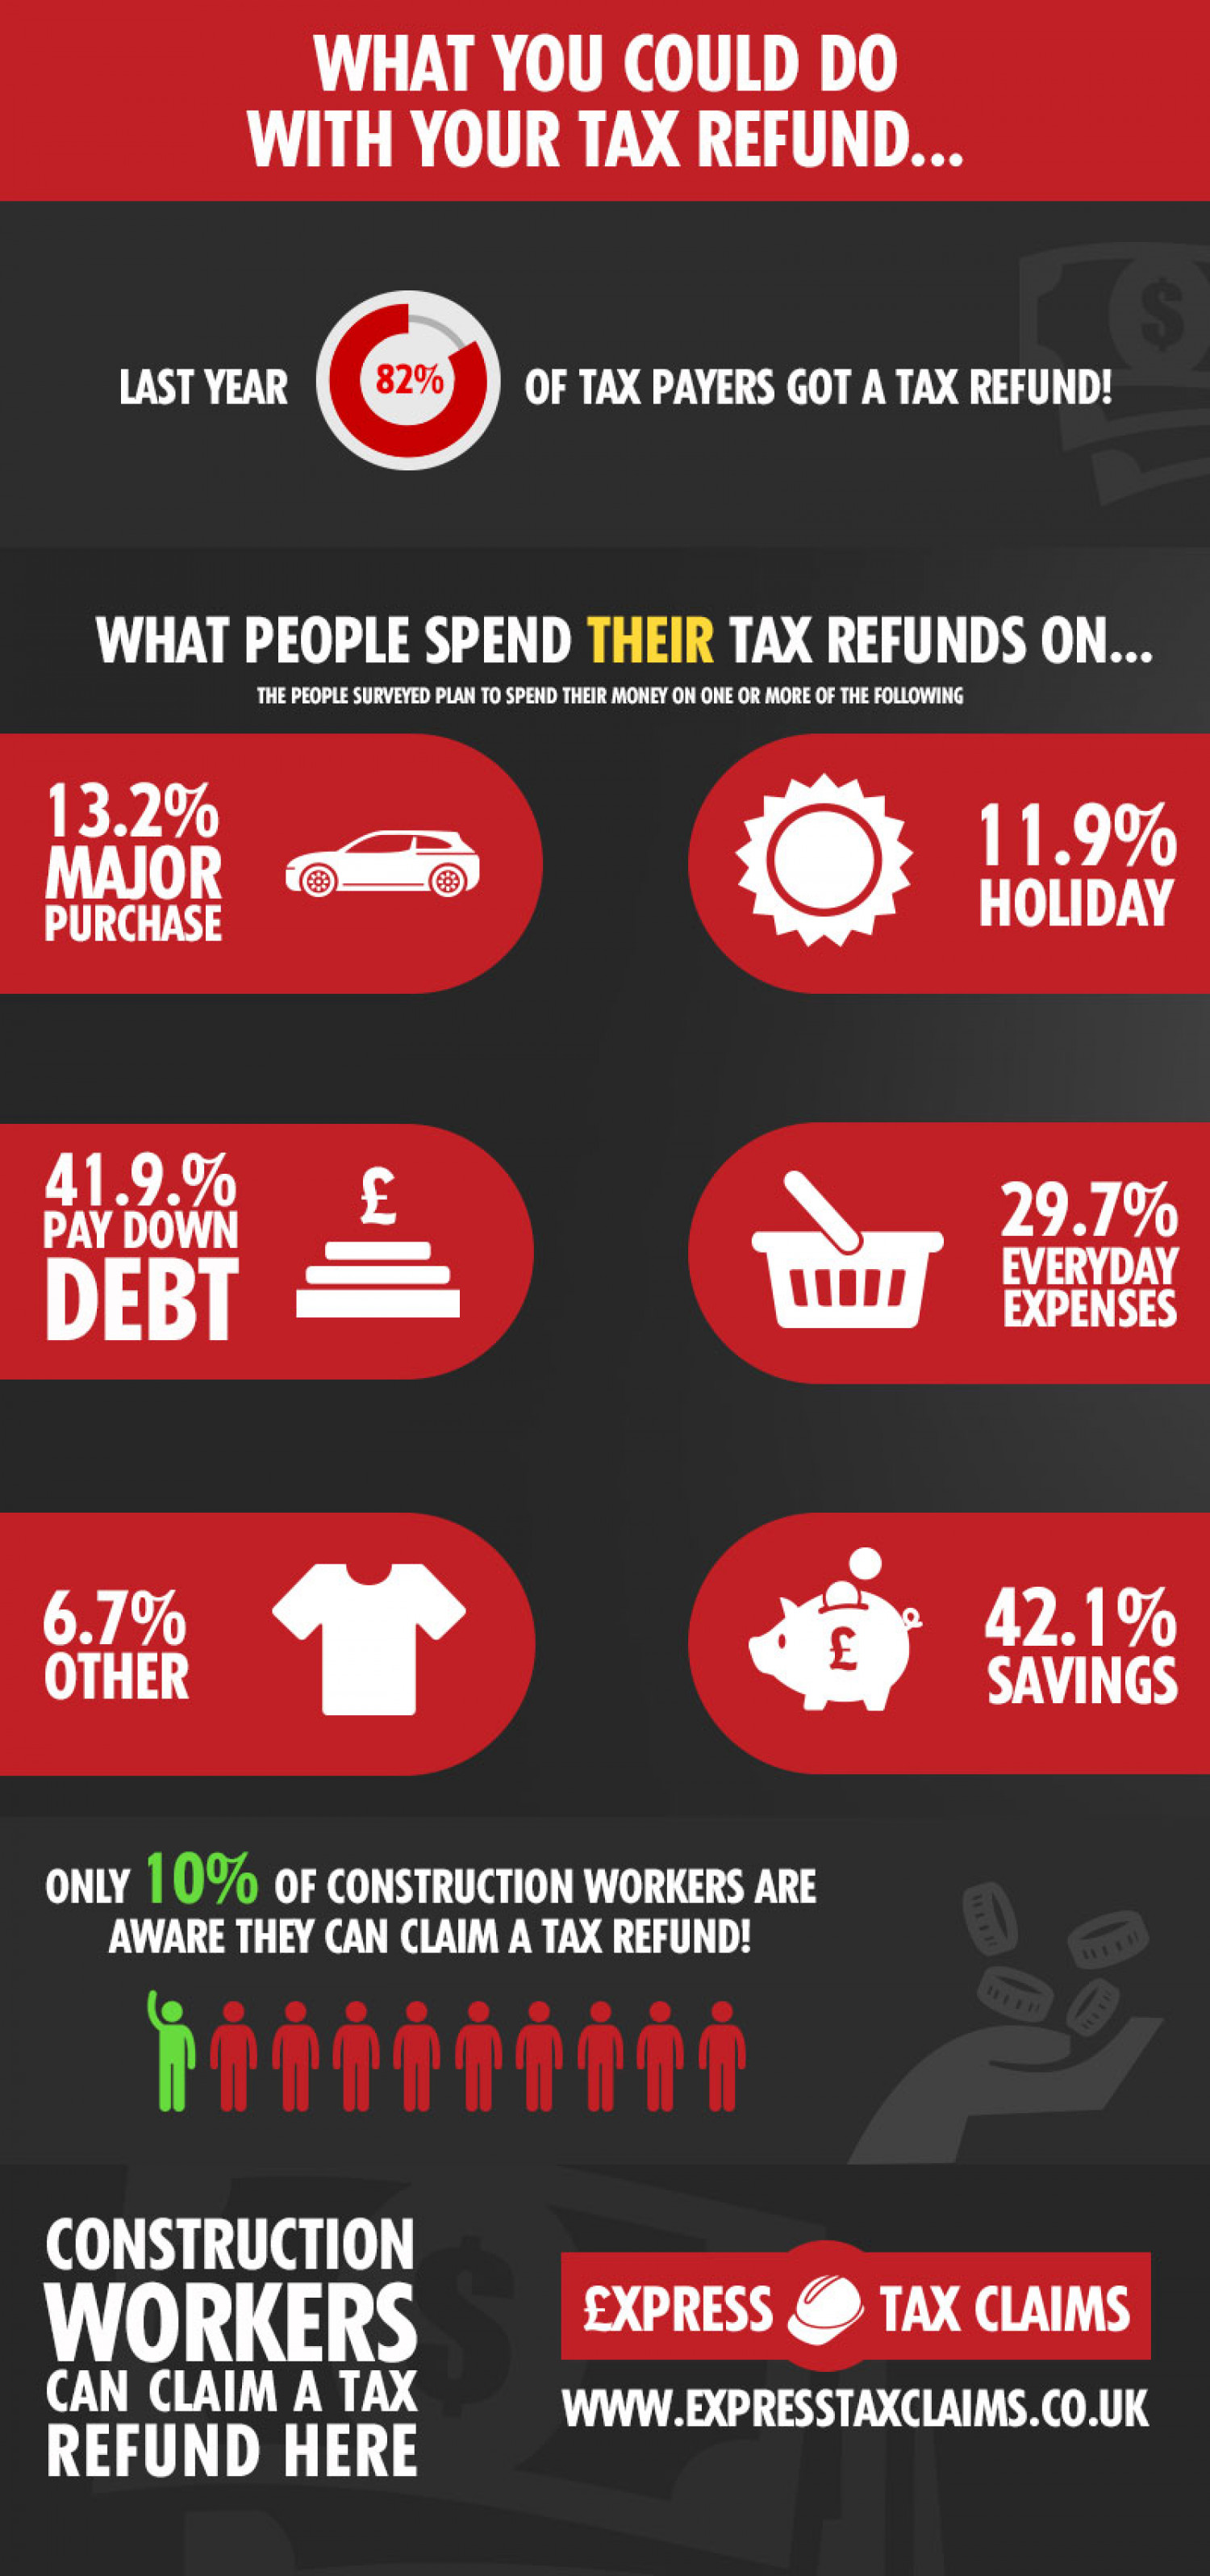 What could you spend your tax refund on? Infographic